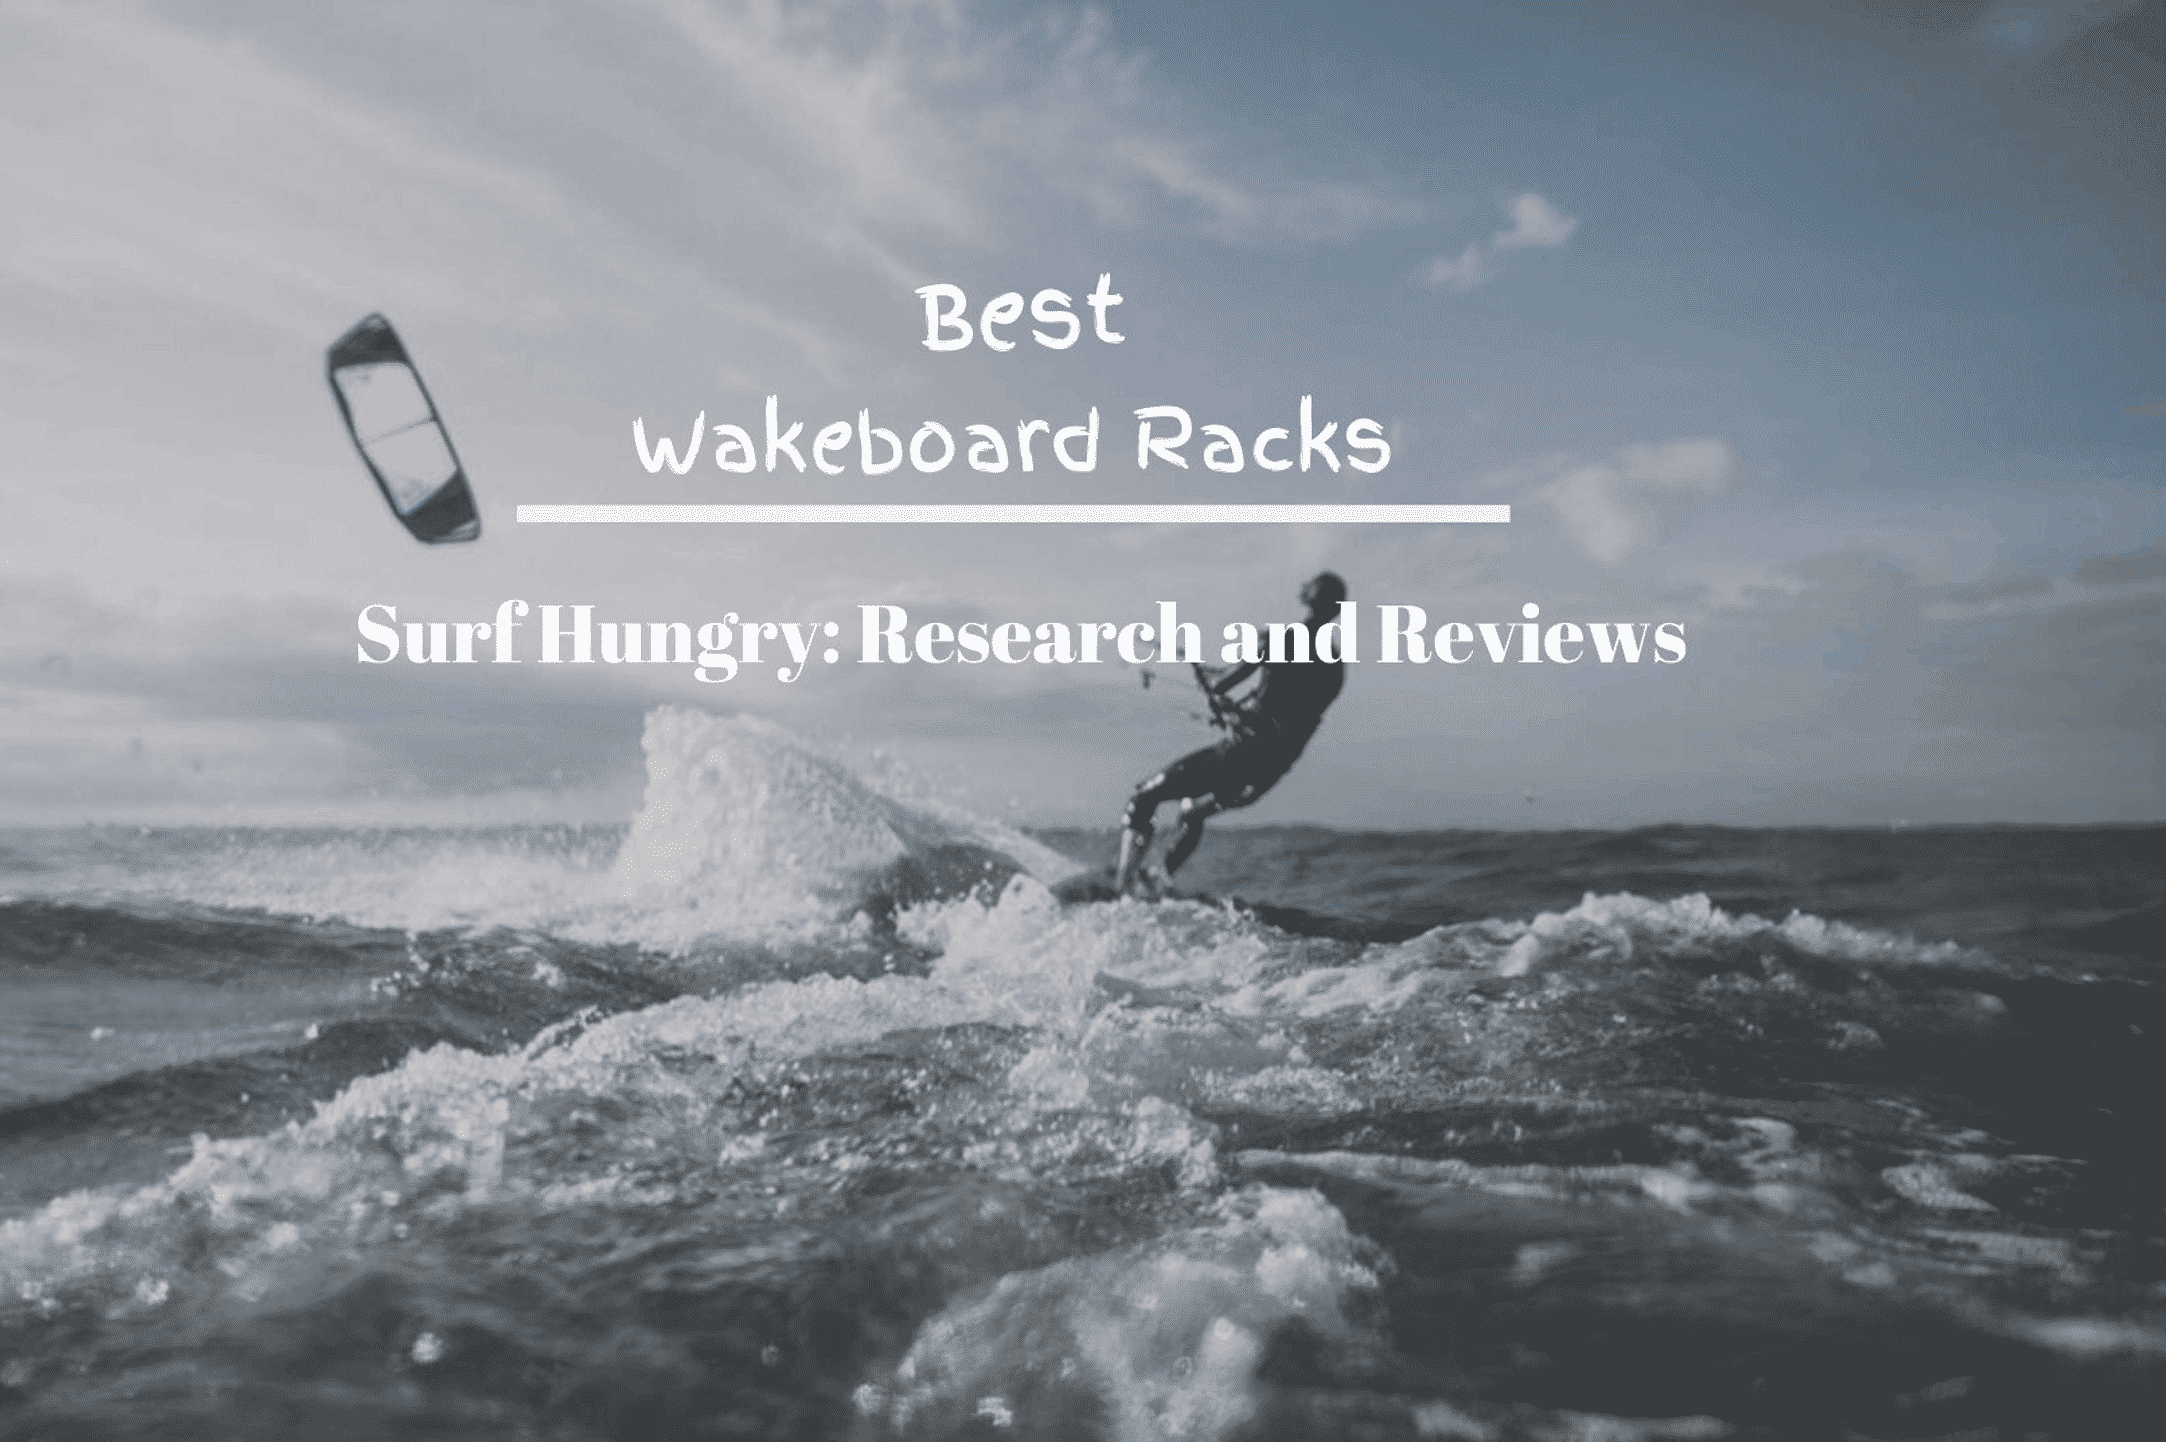 best wakeboard racks